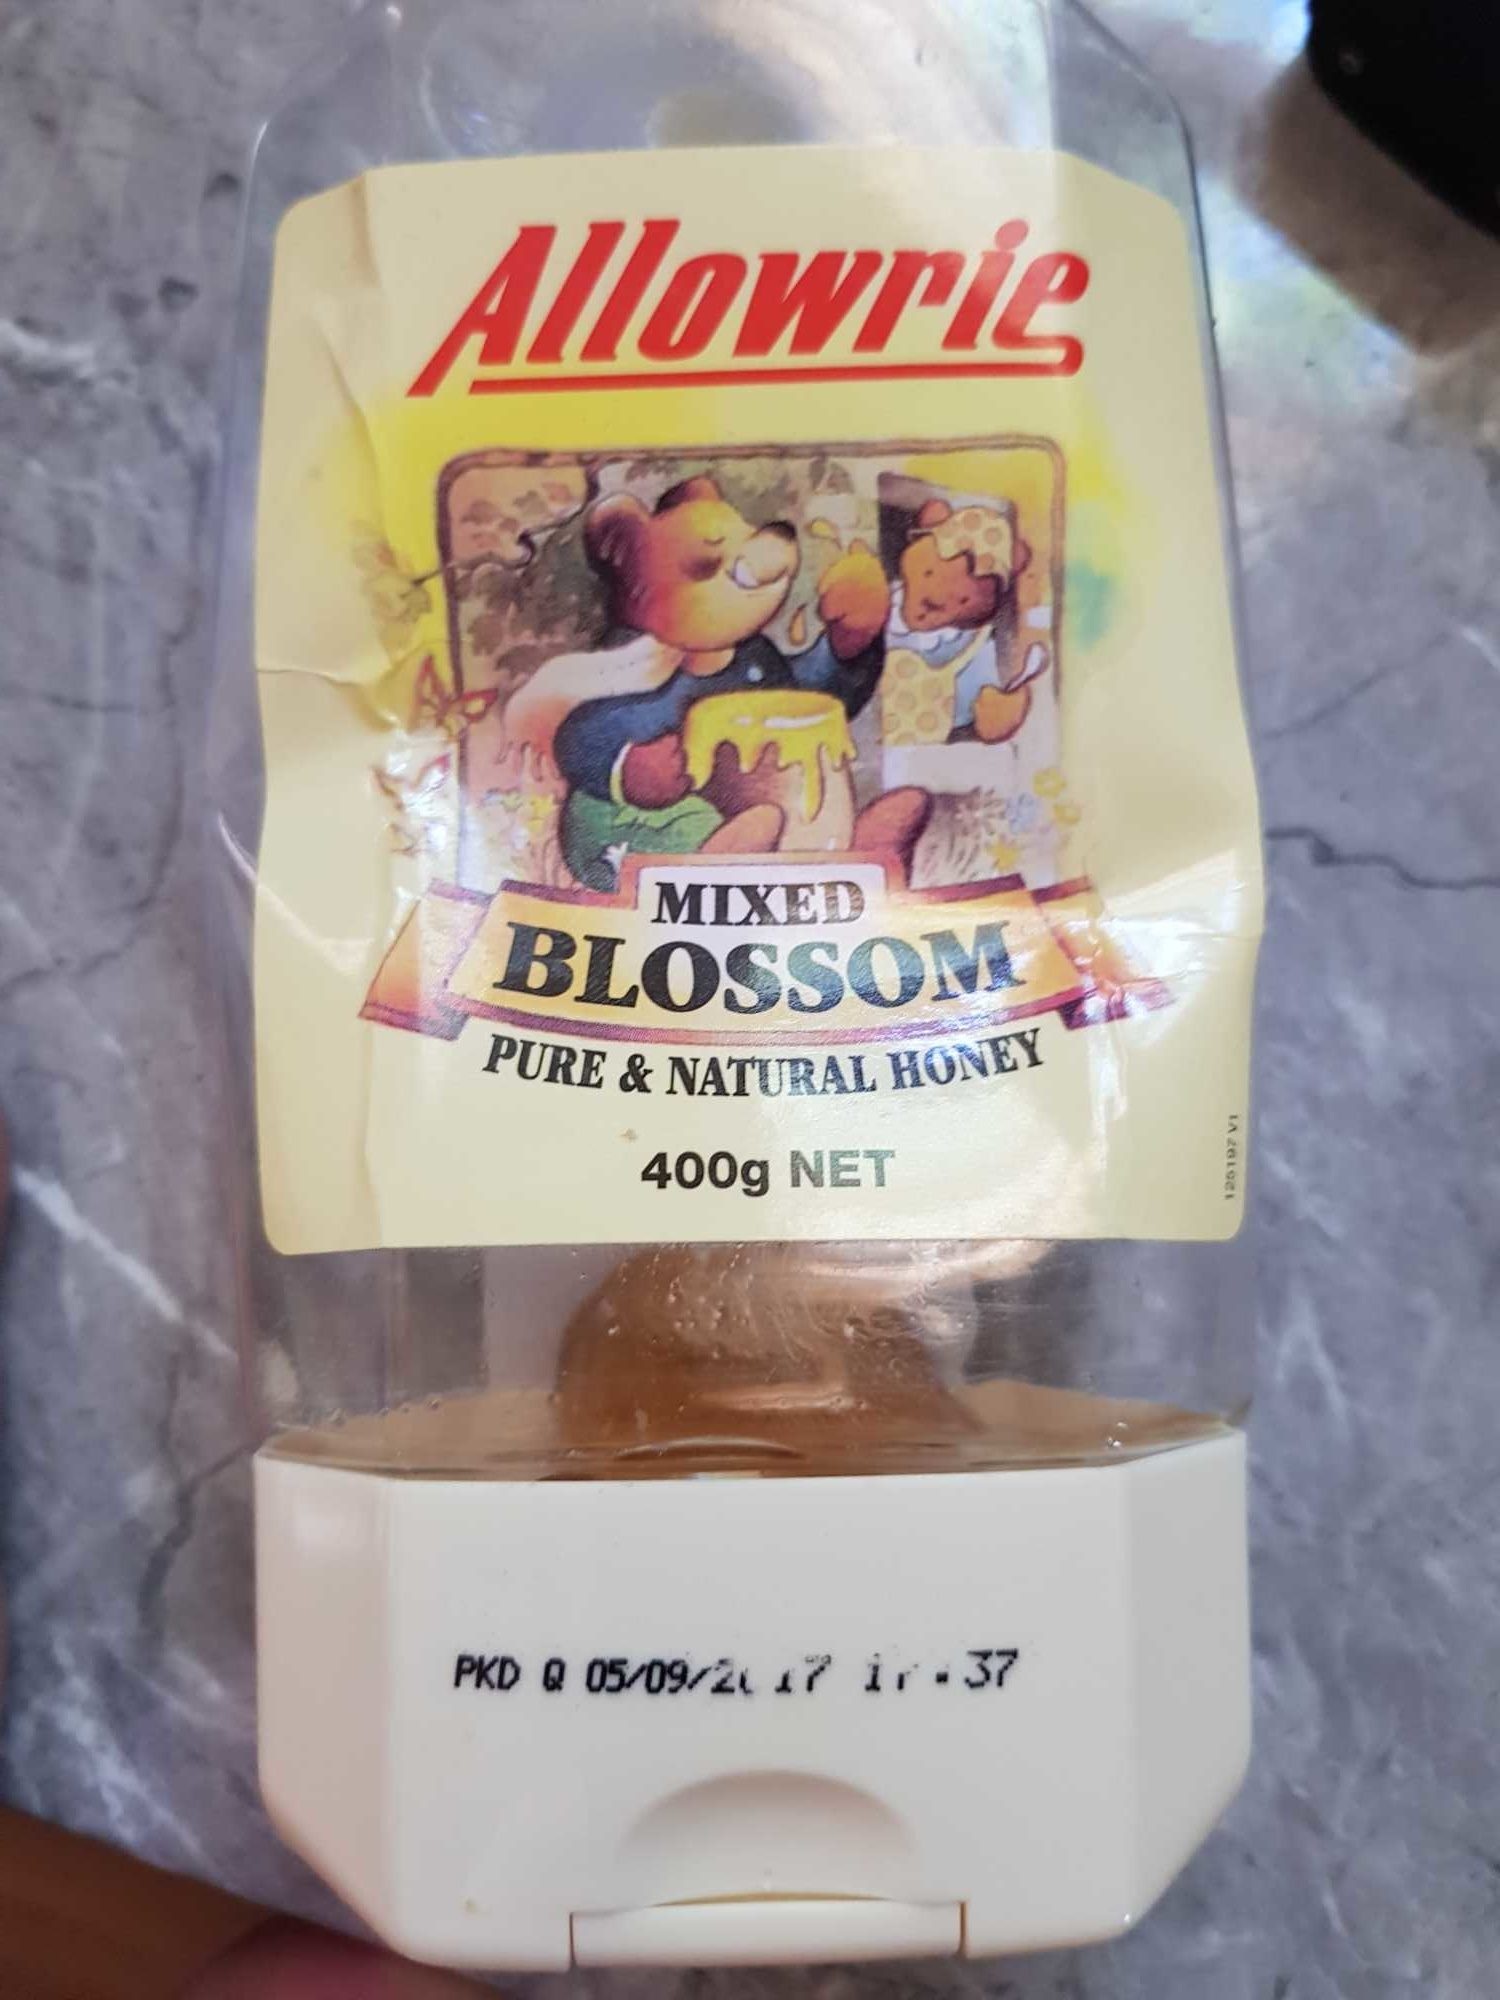 Allowrie Mixed Blossom Pure and Natural Honey - Product - en